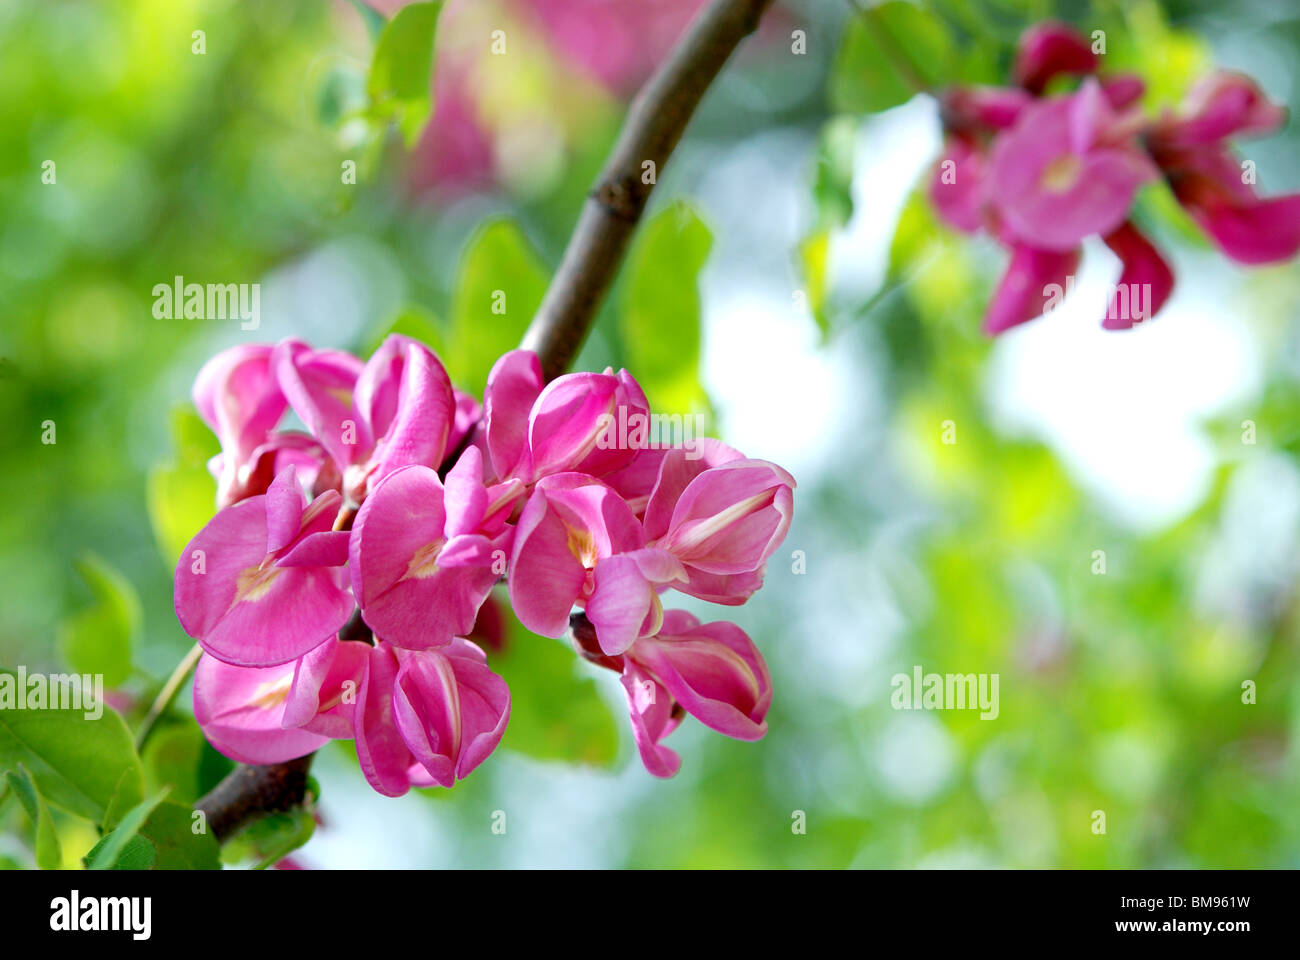 Locust tree branch blooming in the spring stock photo 29705813 alamy locust tree branch blooming in the spring mightylinksfo